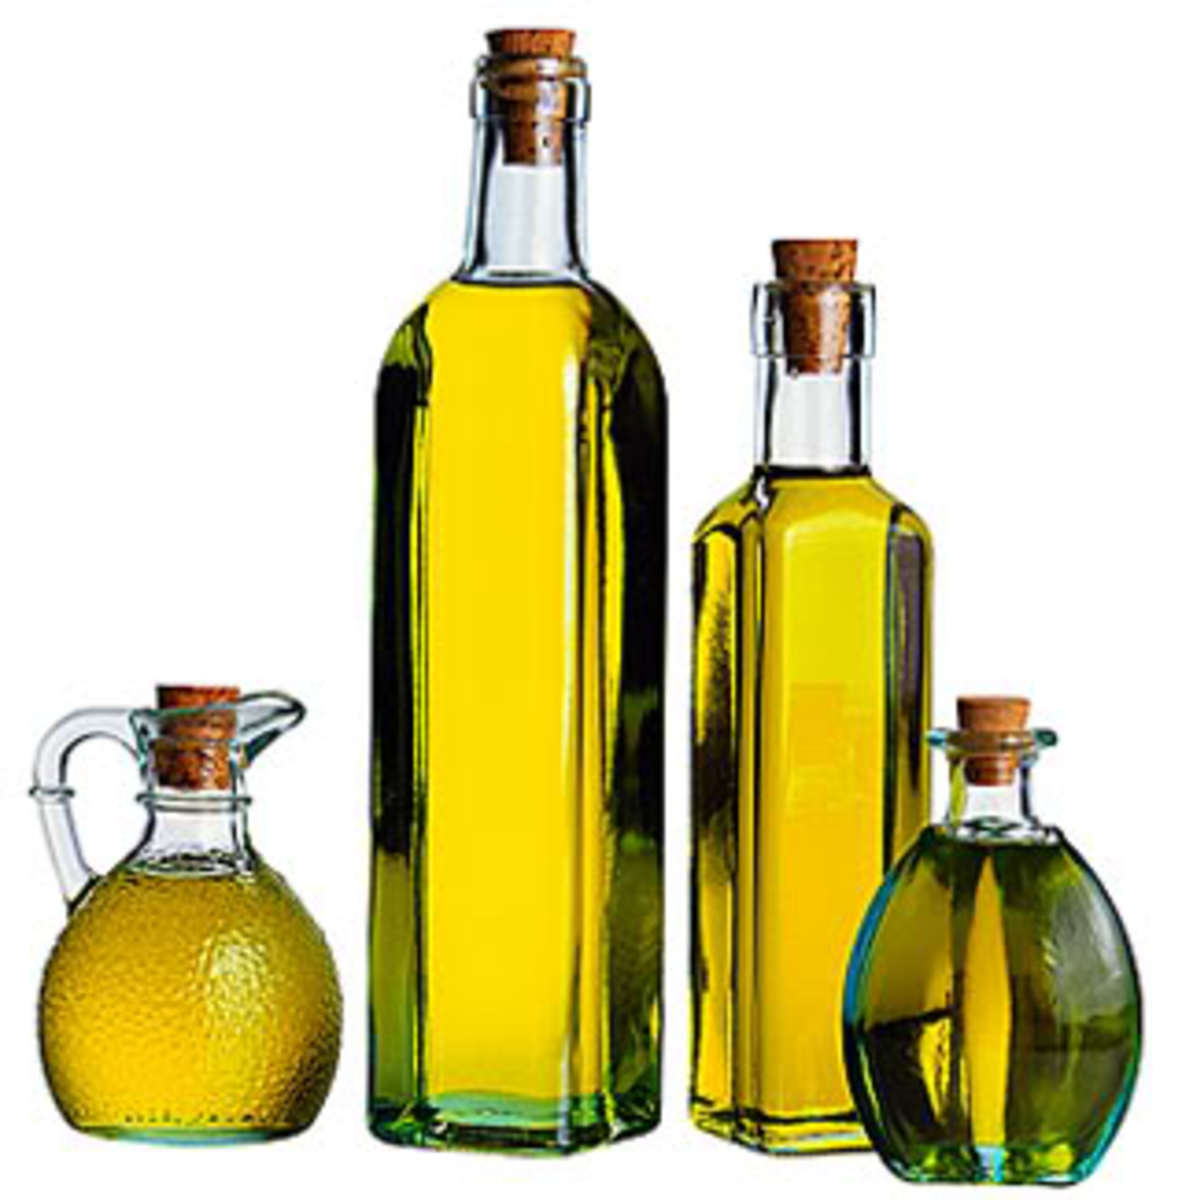 Extra virgin olive oil can sometimes be as much as 90% soybean or peanut oil when counterfeited!